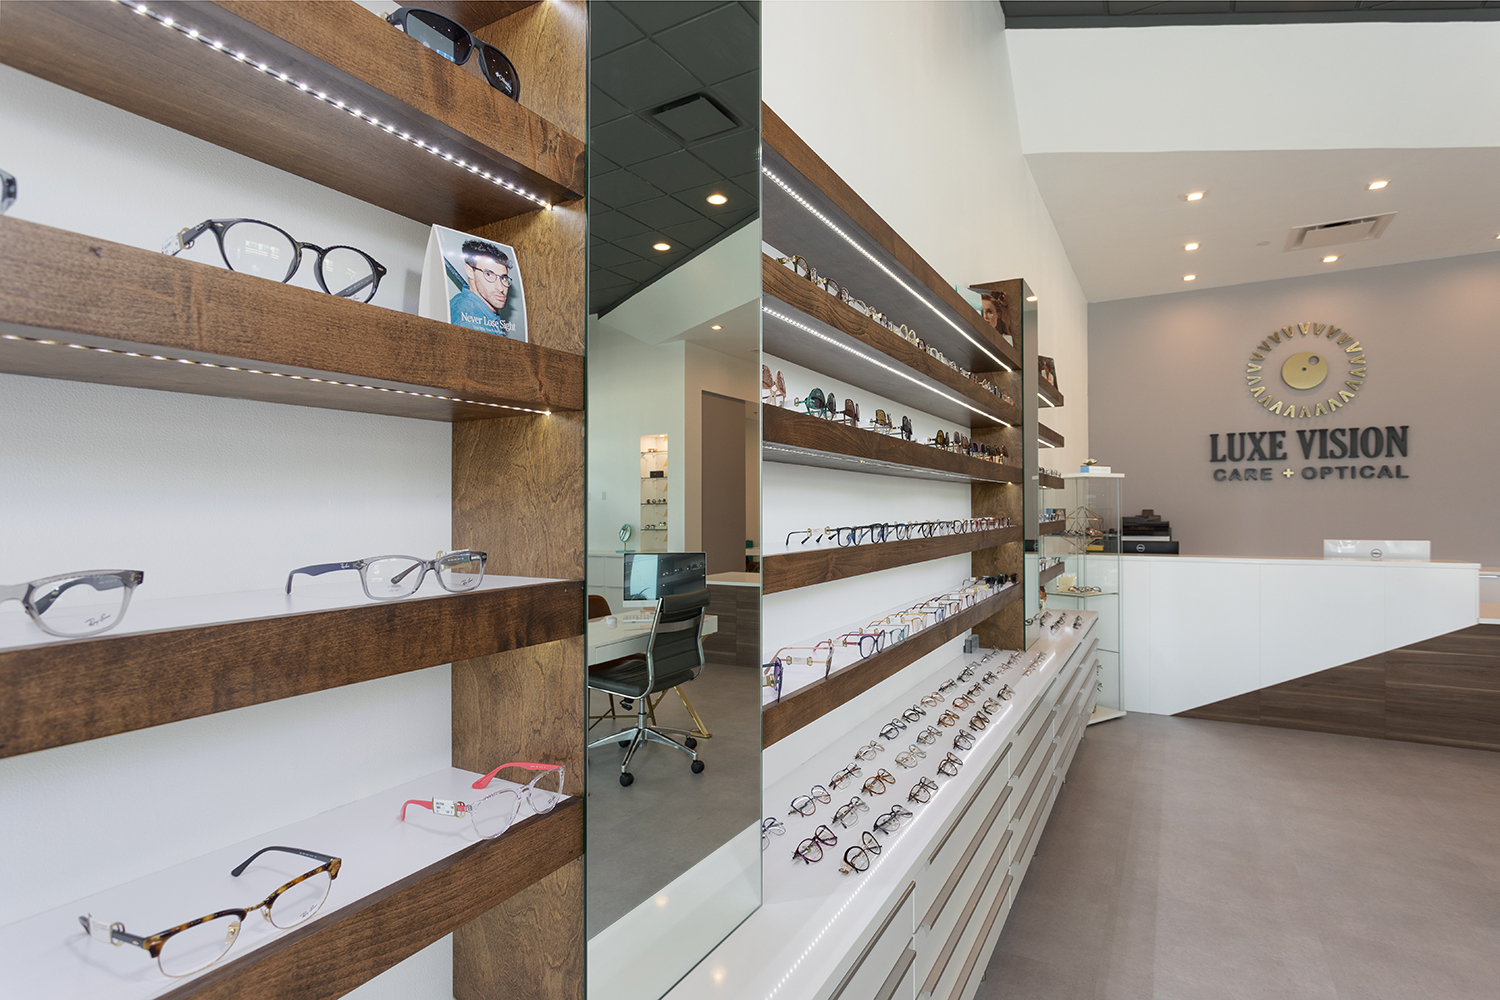 Luxe Vision Retail Display